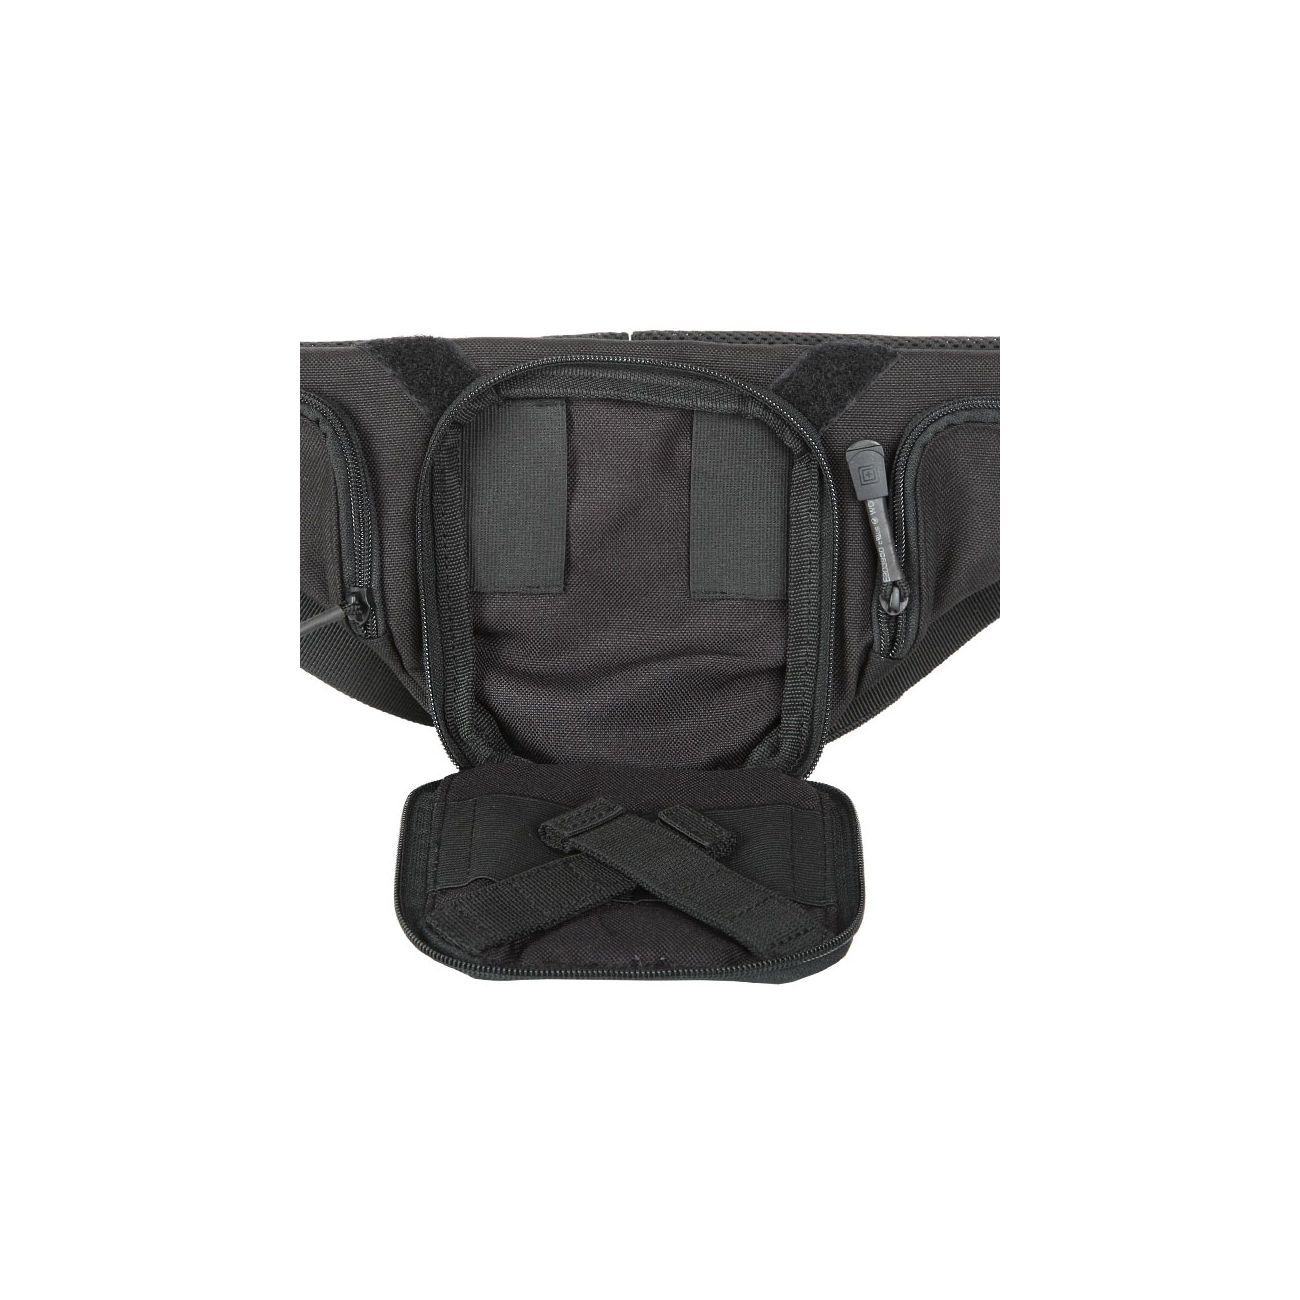 5.11 Select Carry Pistol Pouch schwarz/charcoal 1